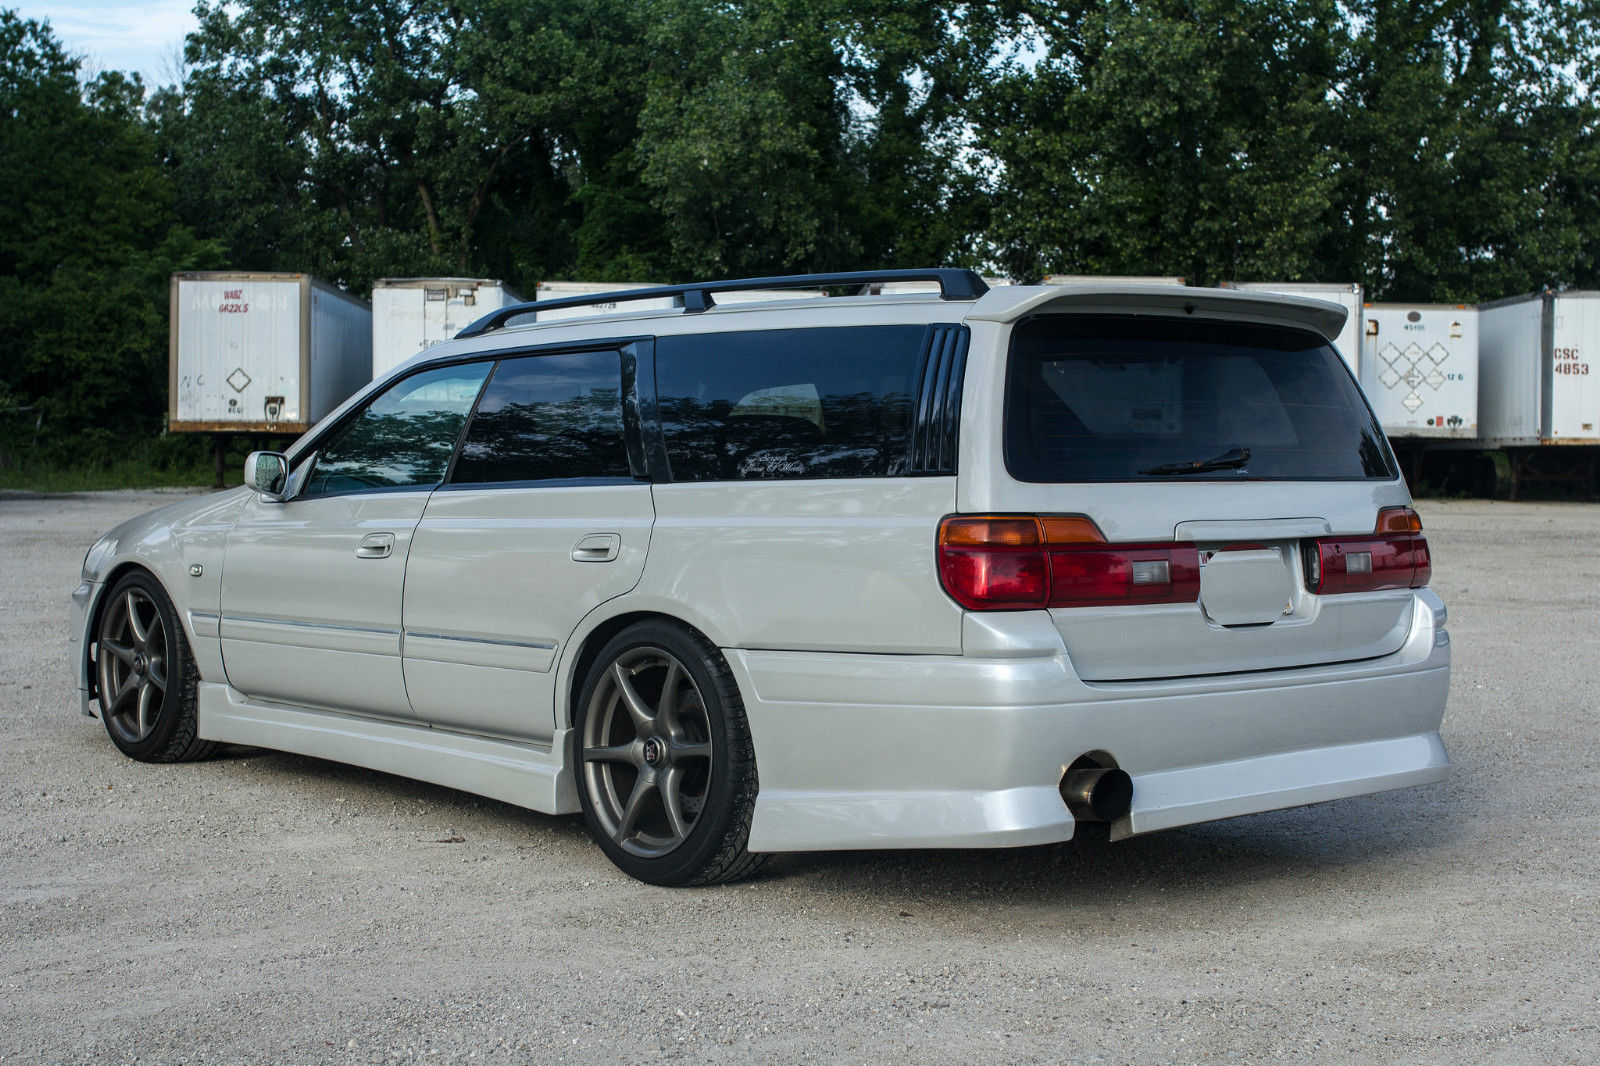 fake r34 nisan gt r wagon for sale is based on jdm stagea autoevolution. Black Bedroom Furniture Sets. Home Design Ideas